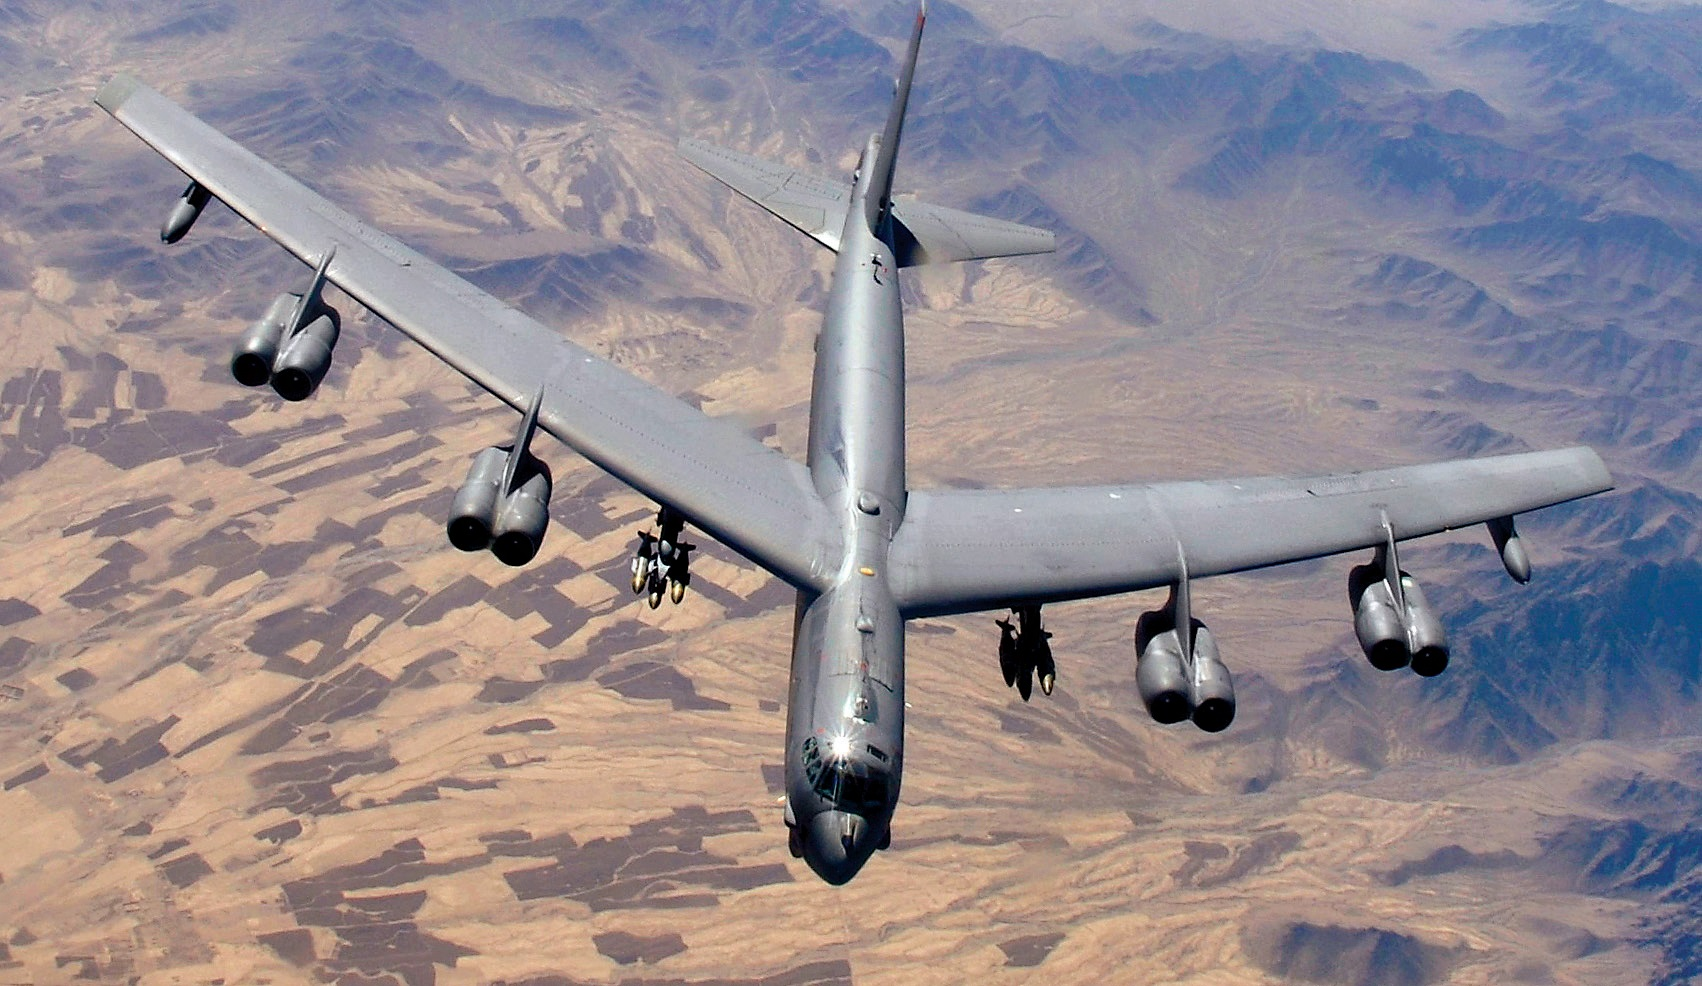 B-52 Bombers for Israel?